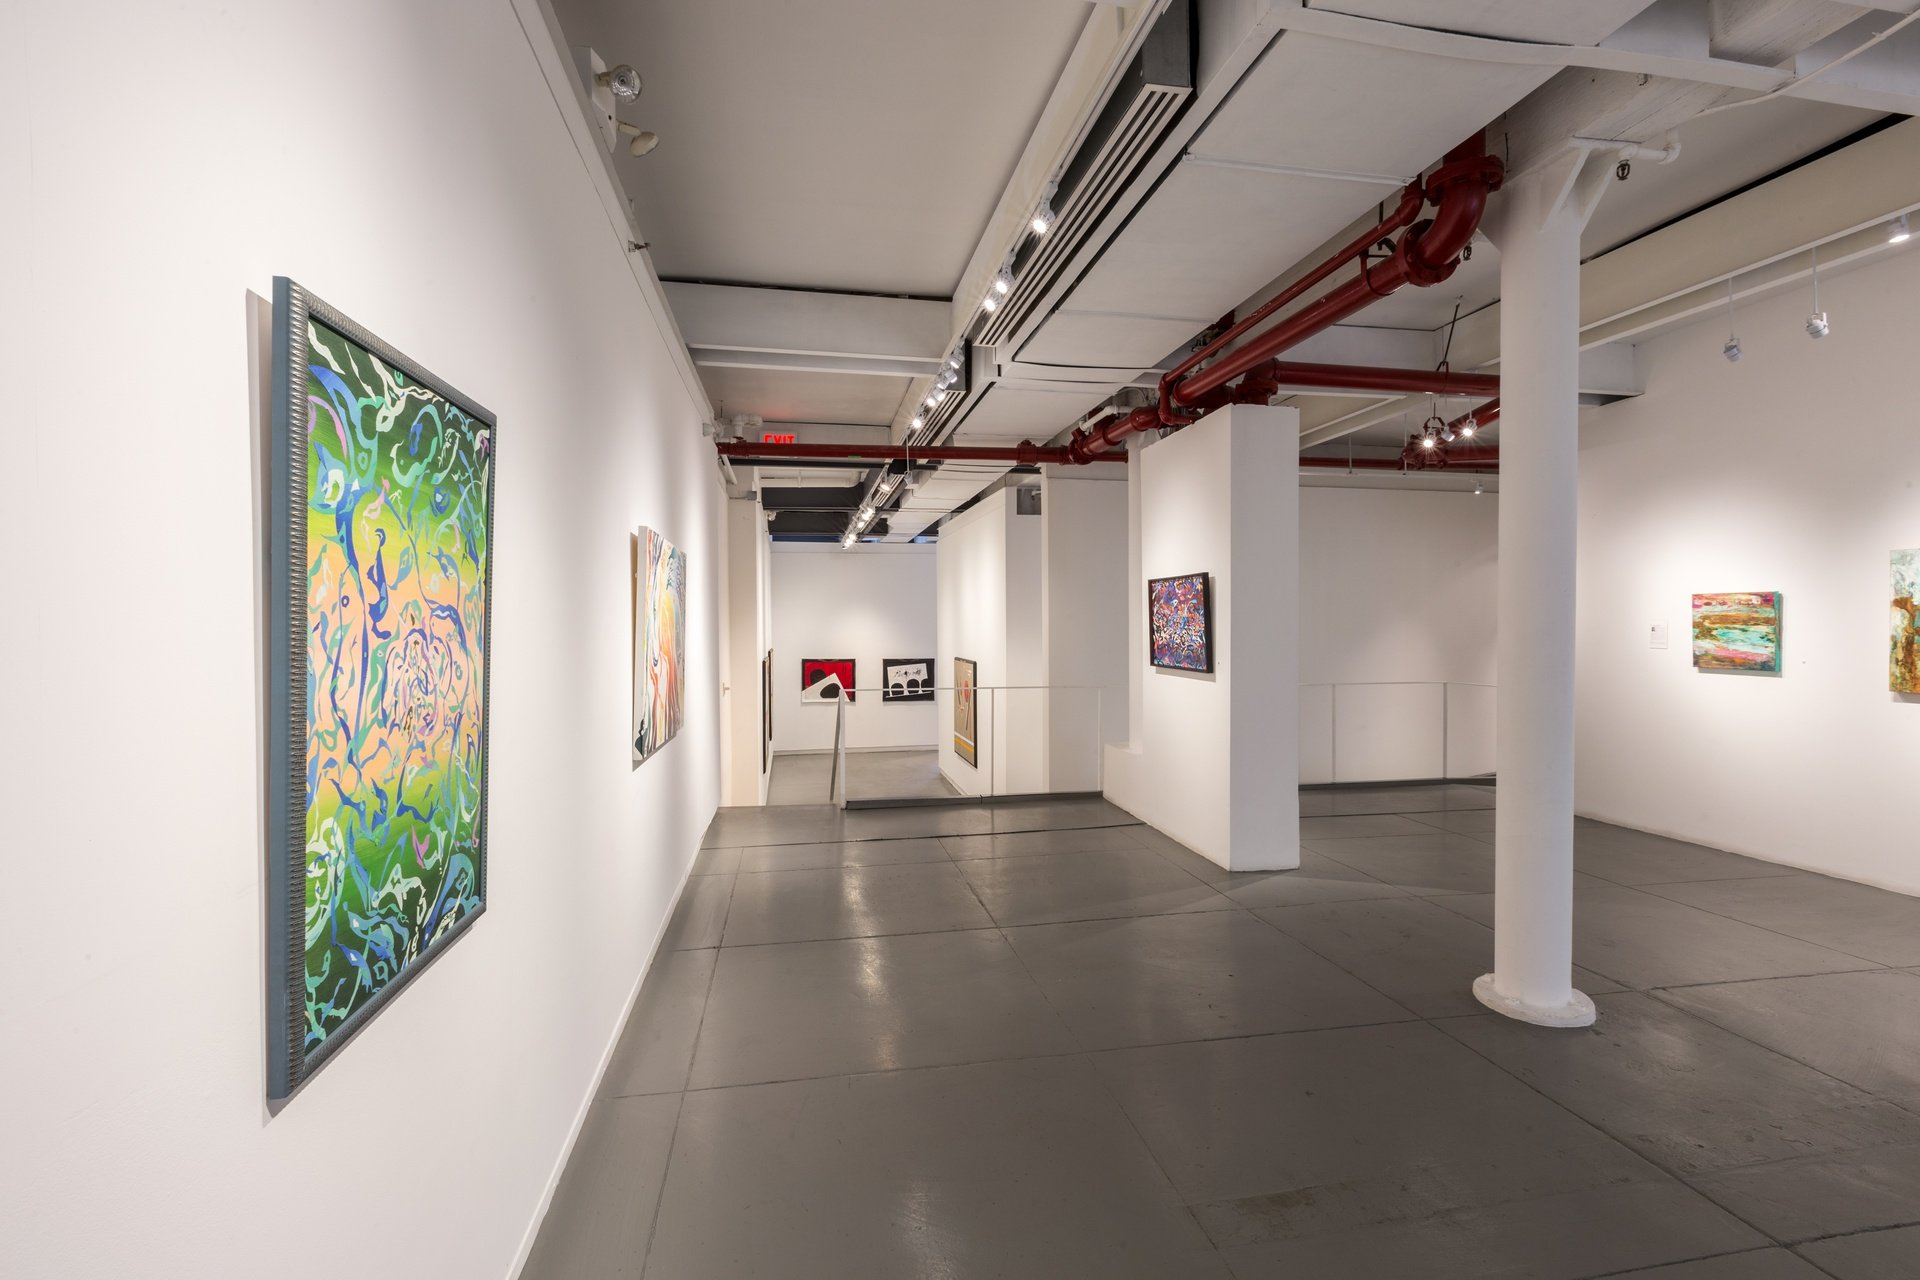 NYC corporate event venues Gallery White Space Chelsea at Agora Gallery image 0